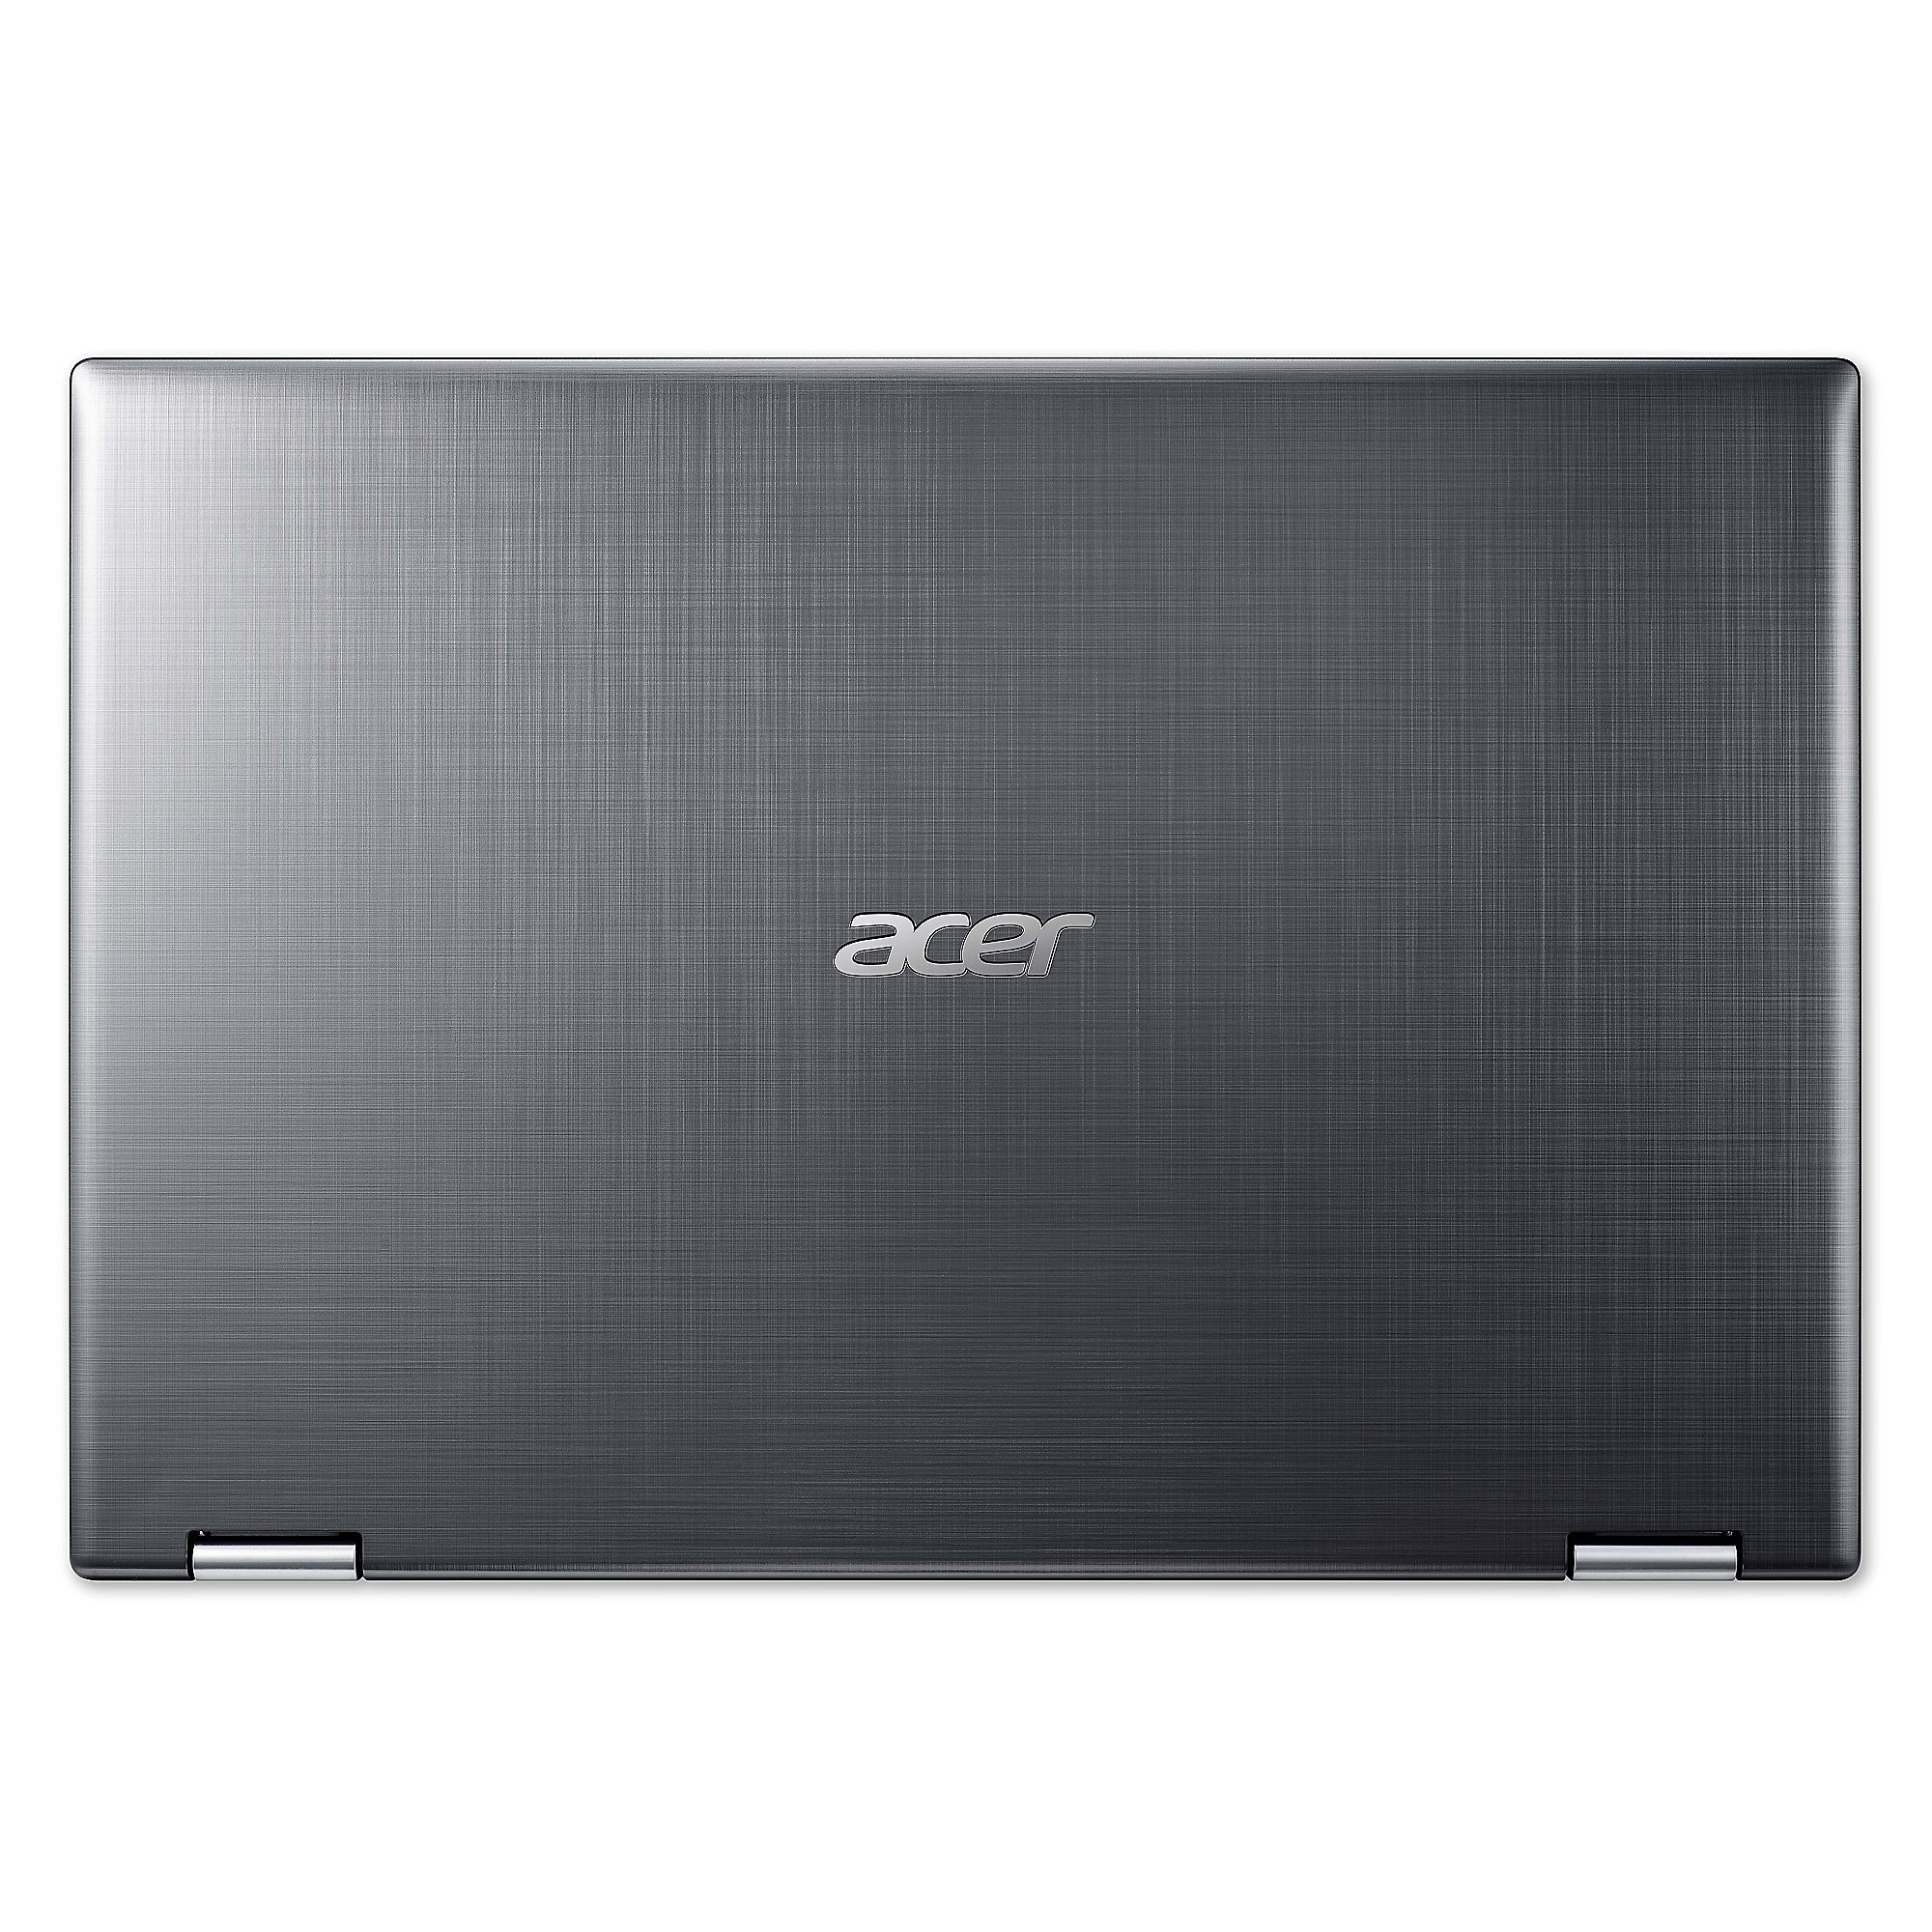 "Acer Spin 3 SP314-51-34CD i3-7130U 4GB/128GB SSD 14"" FHD 2in1 Touch W10"